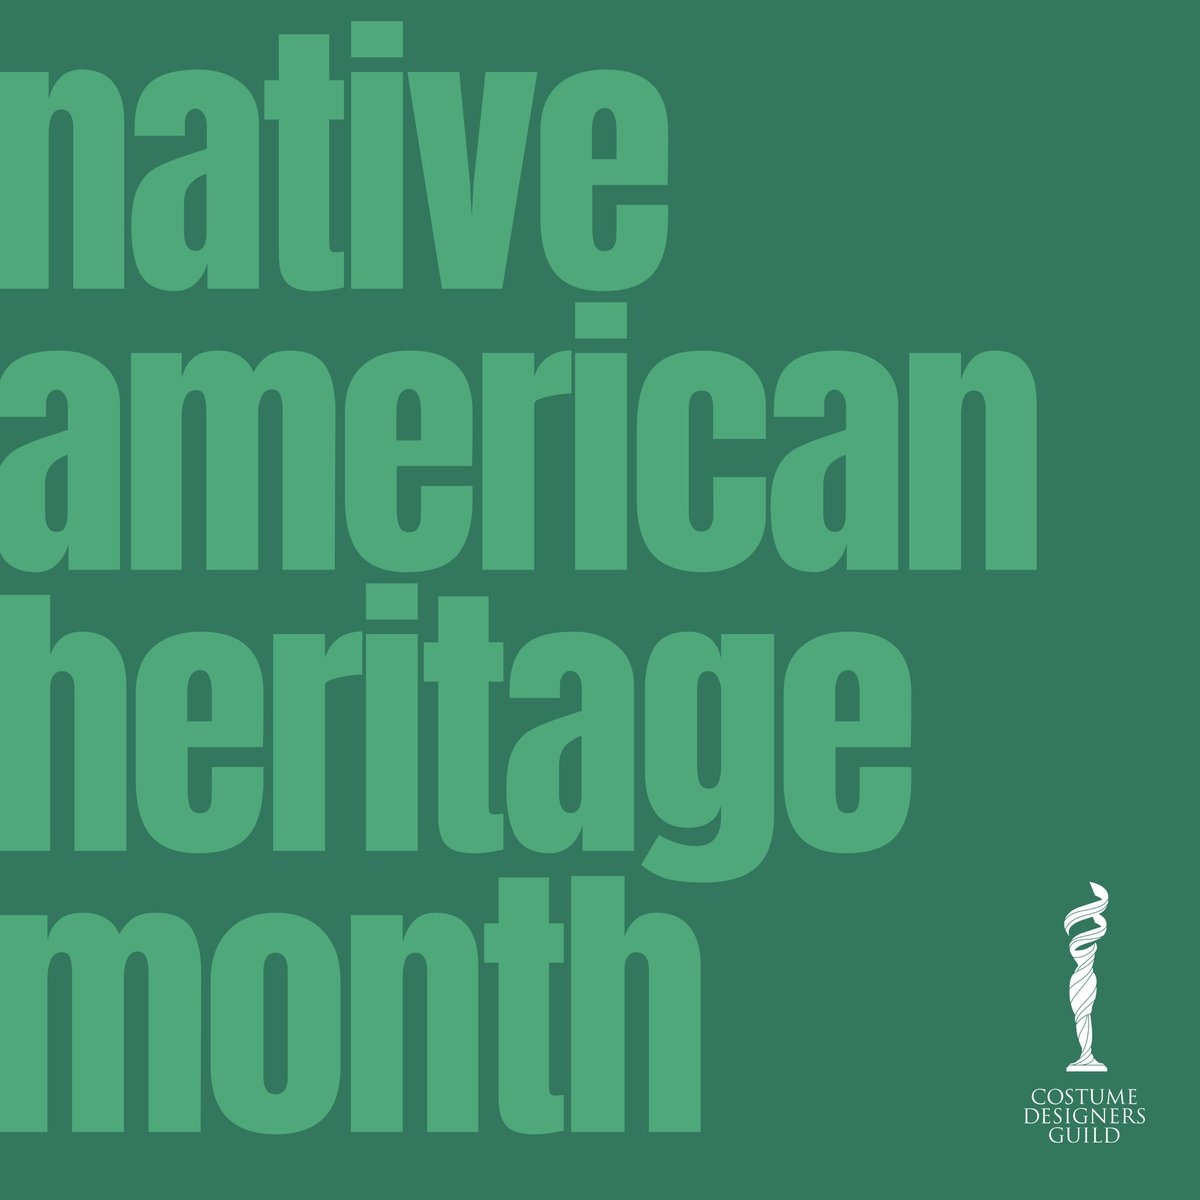 We celebrate and honor the rich ancestry and traditions of #NativeAmericans.